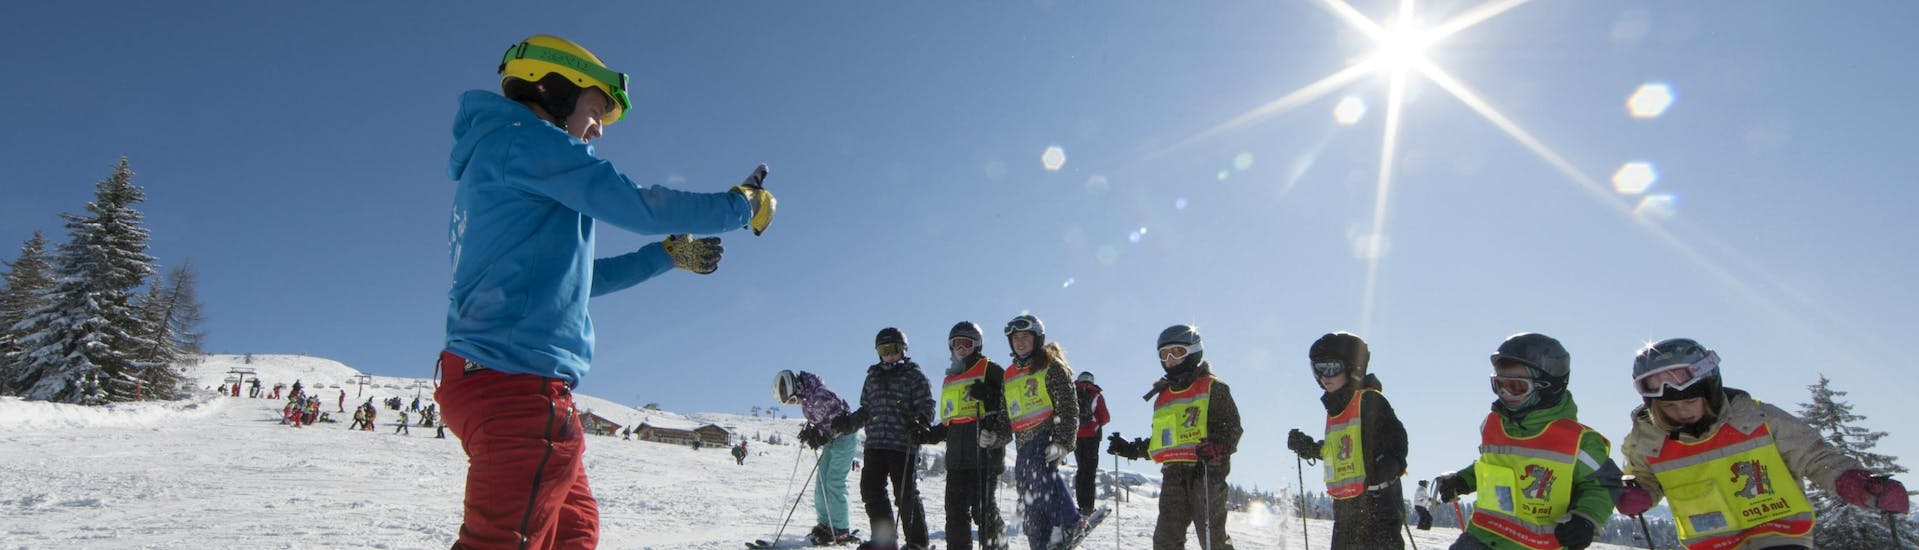 A ski instructor is holding one of the many group ski lessons in the ski resort of Versciaco - Monte Elmo (Vierschach - Helm).